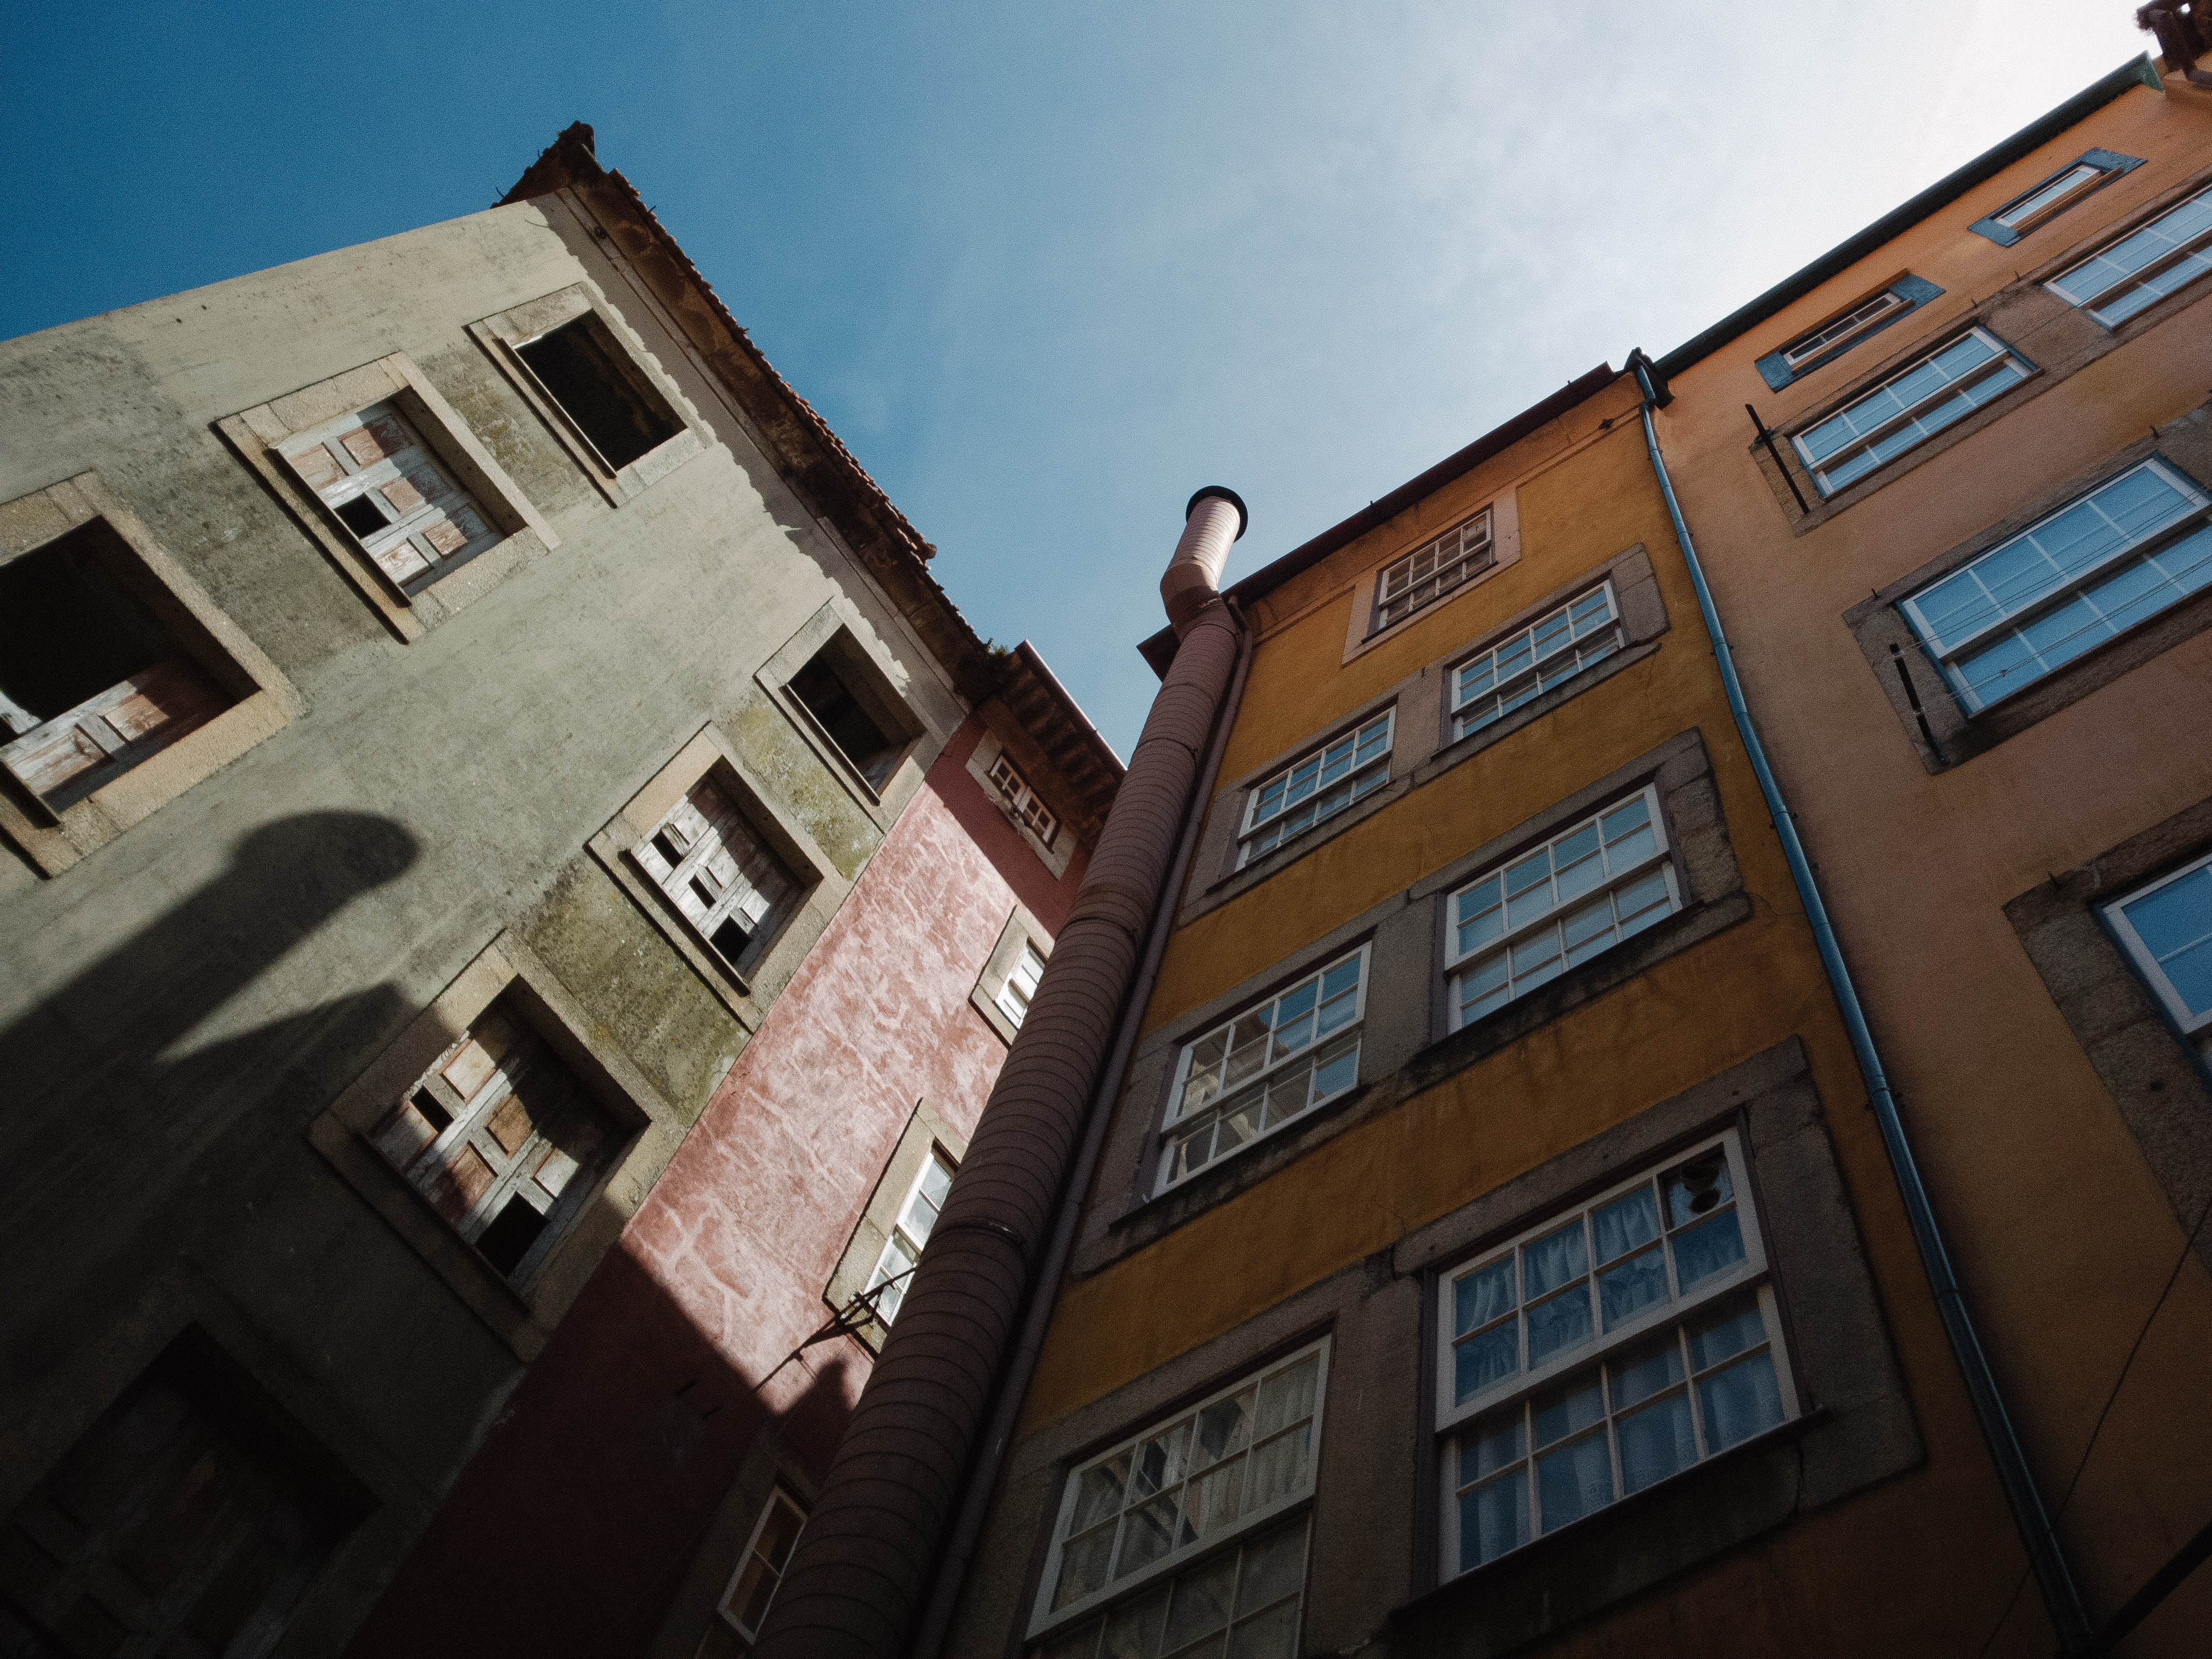 low angle photography of two buildings under clear sky